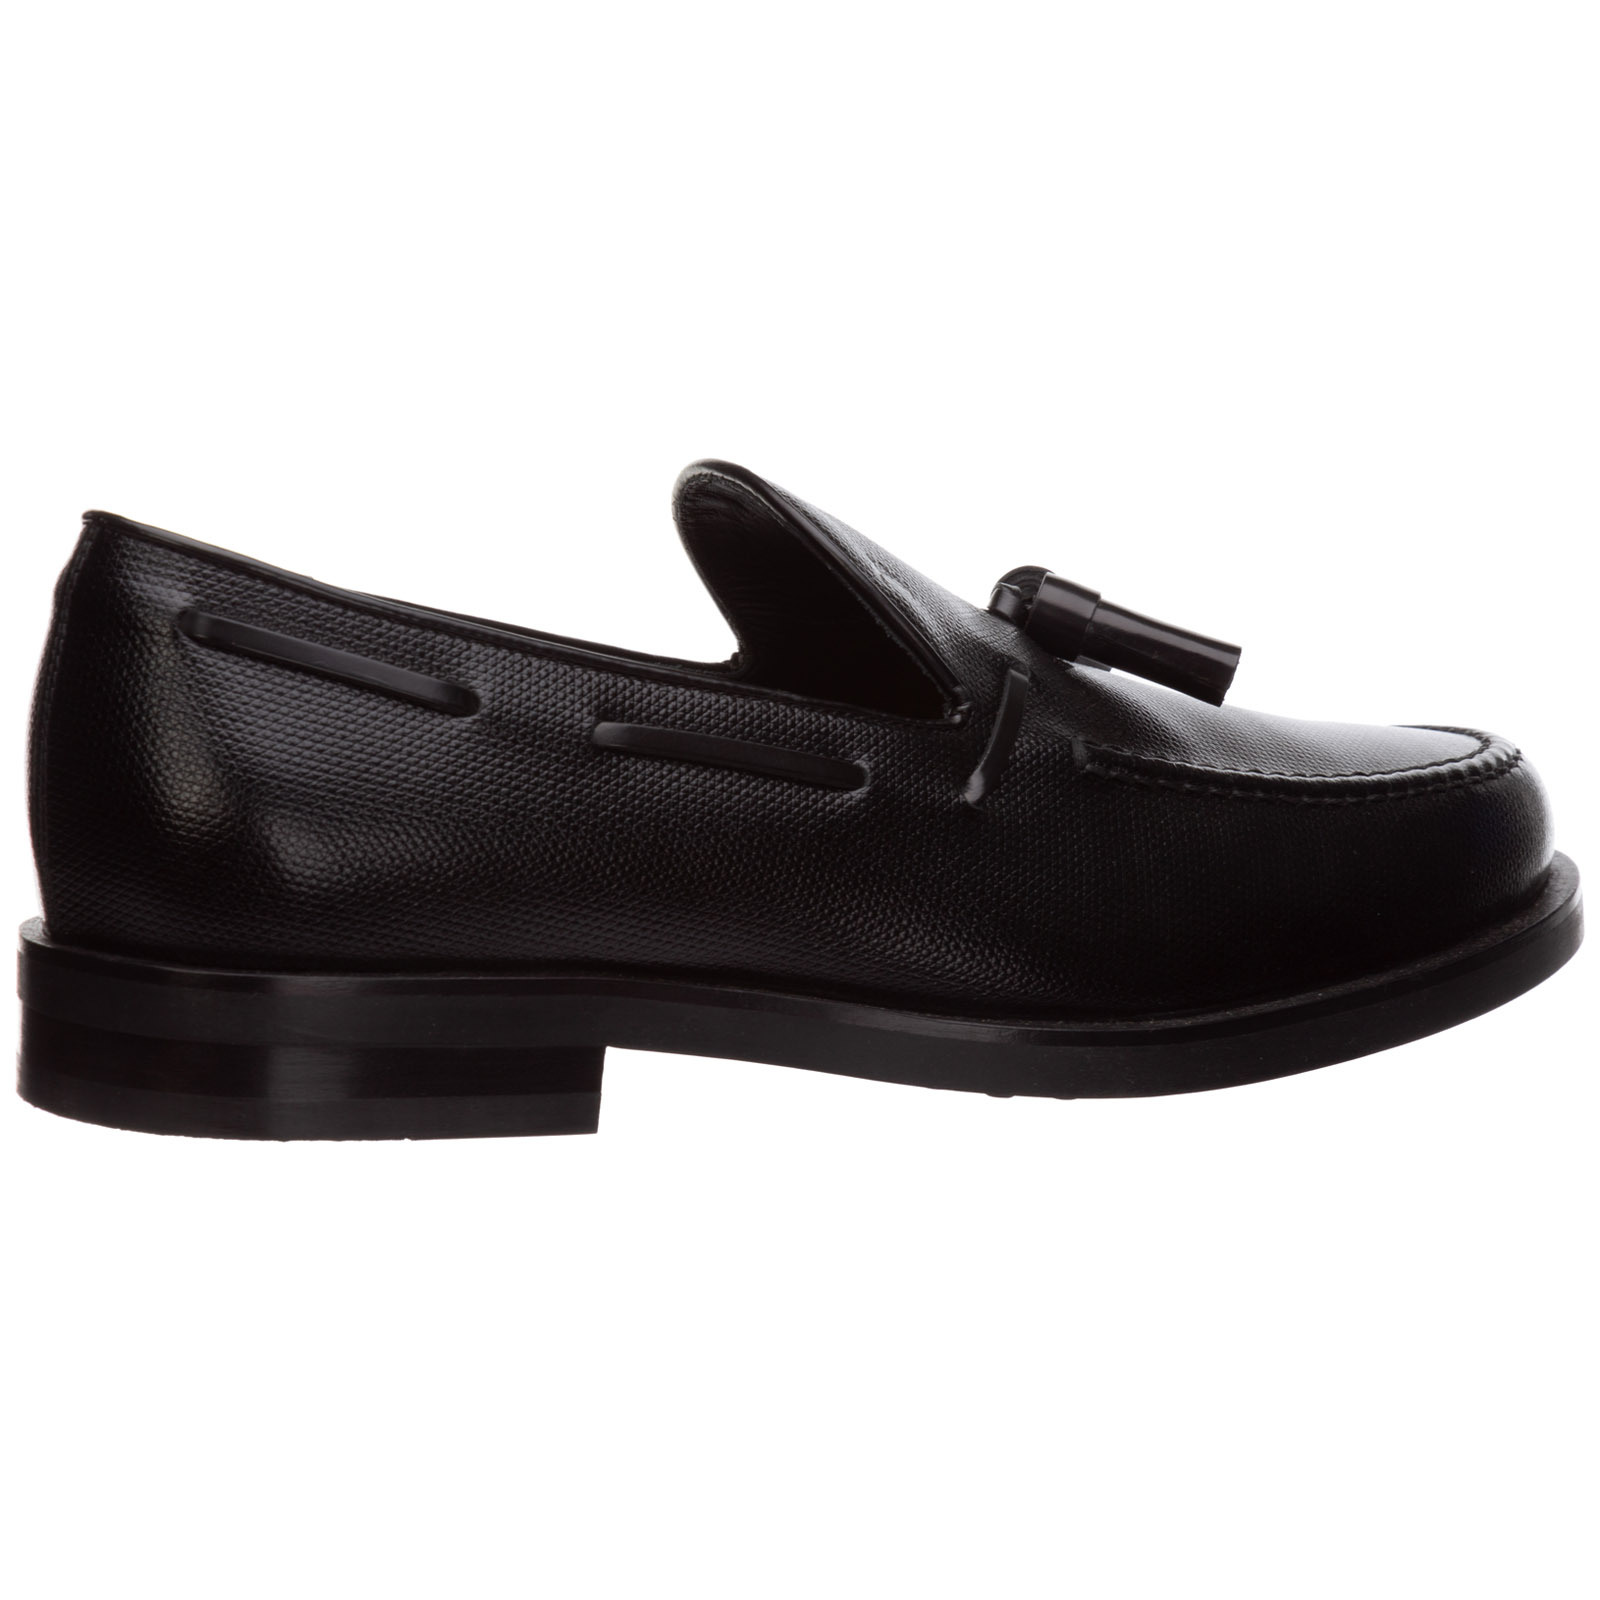 Men's leather loafers moccasins  pantofola nappina formale